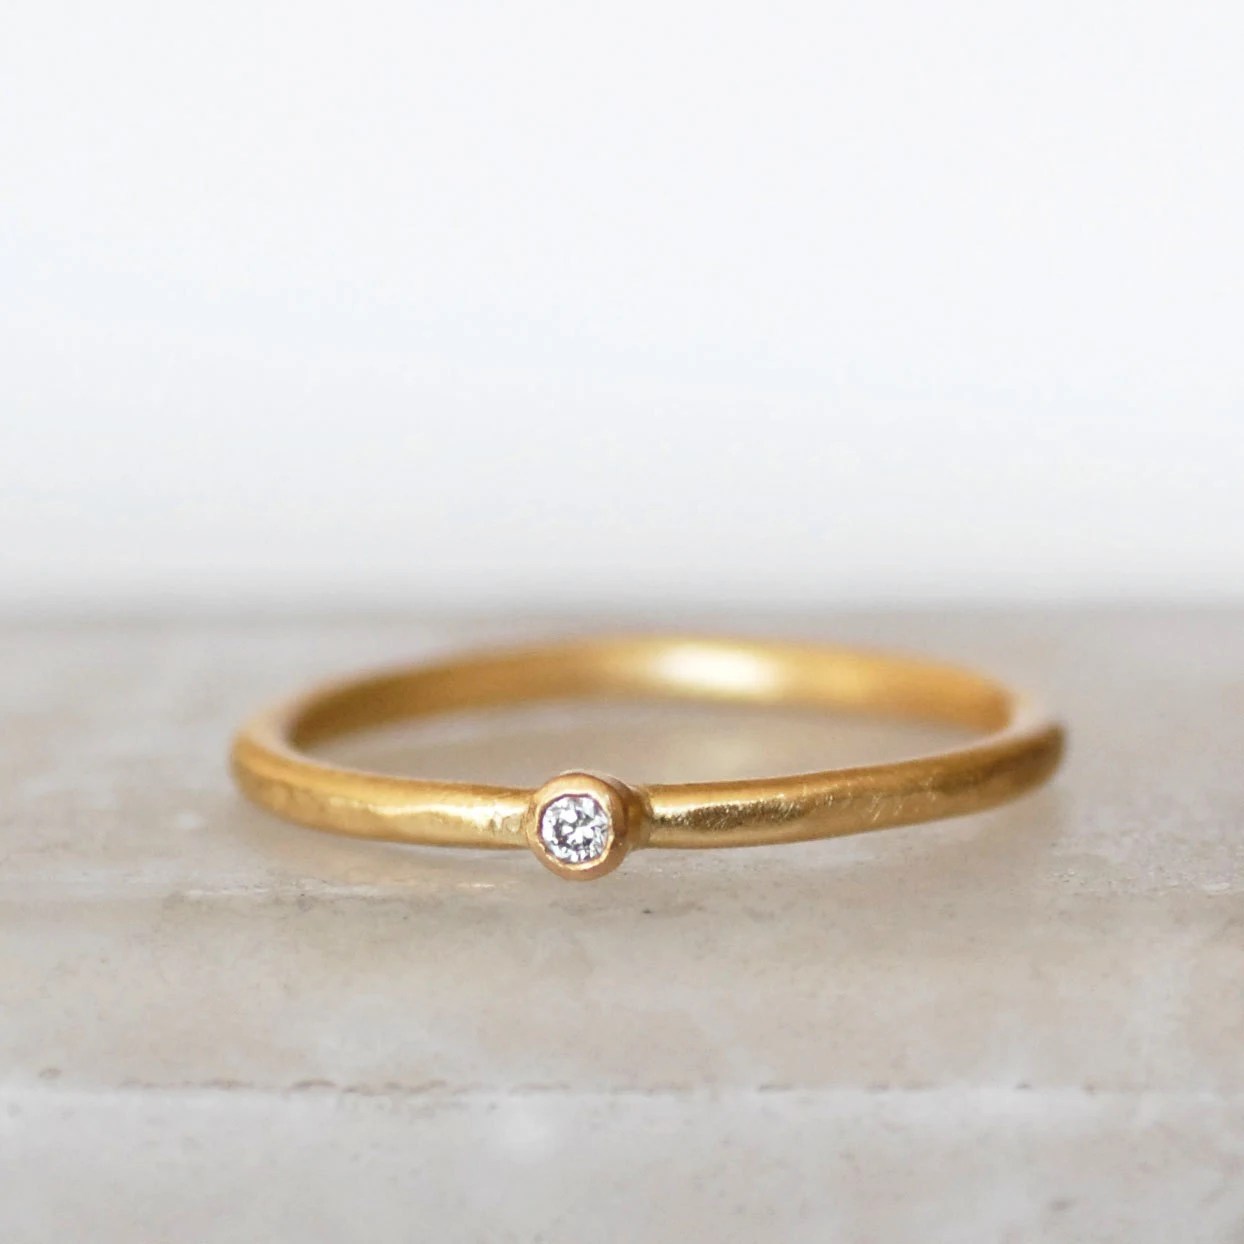 tiny wedding band tiny wedding ring Tiny Diamond Ring 2mm Diamond Ring Small Diamond Gold Stacking Ring Choose 14k OR 18k Gold Eco Friendly Recycled Gold